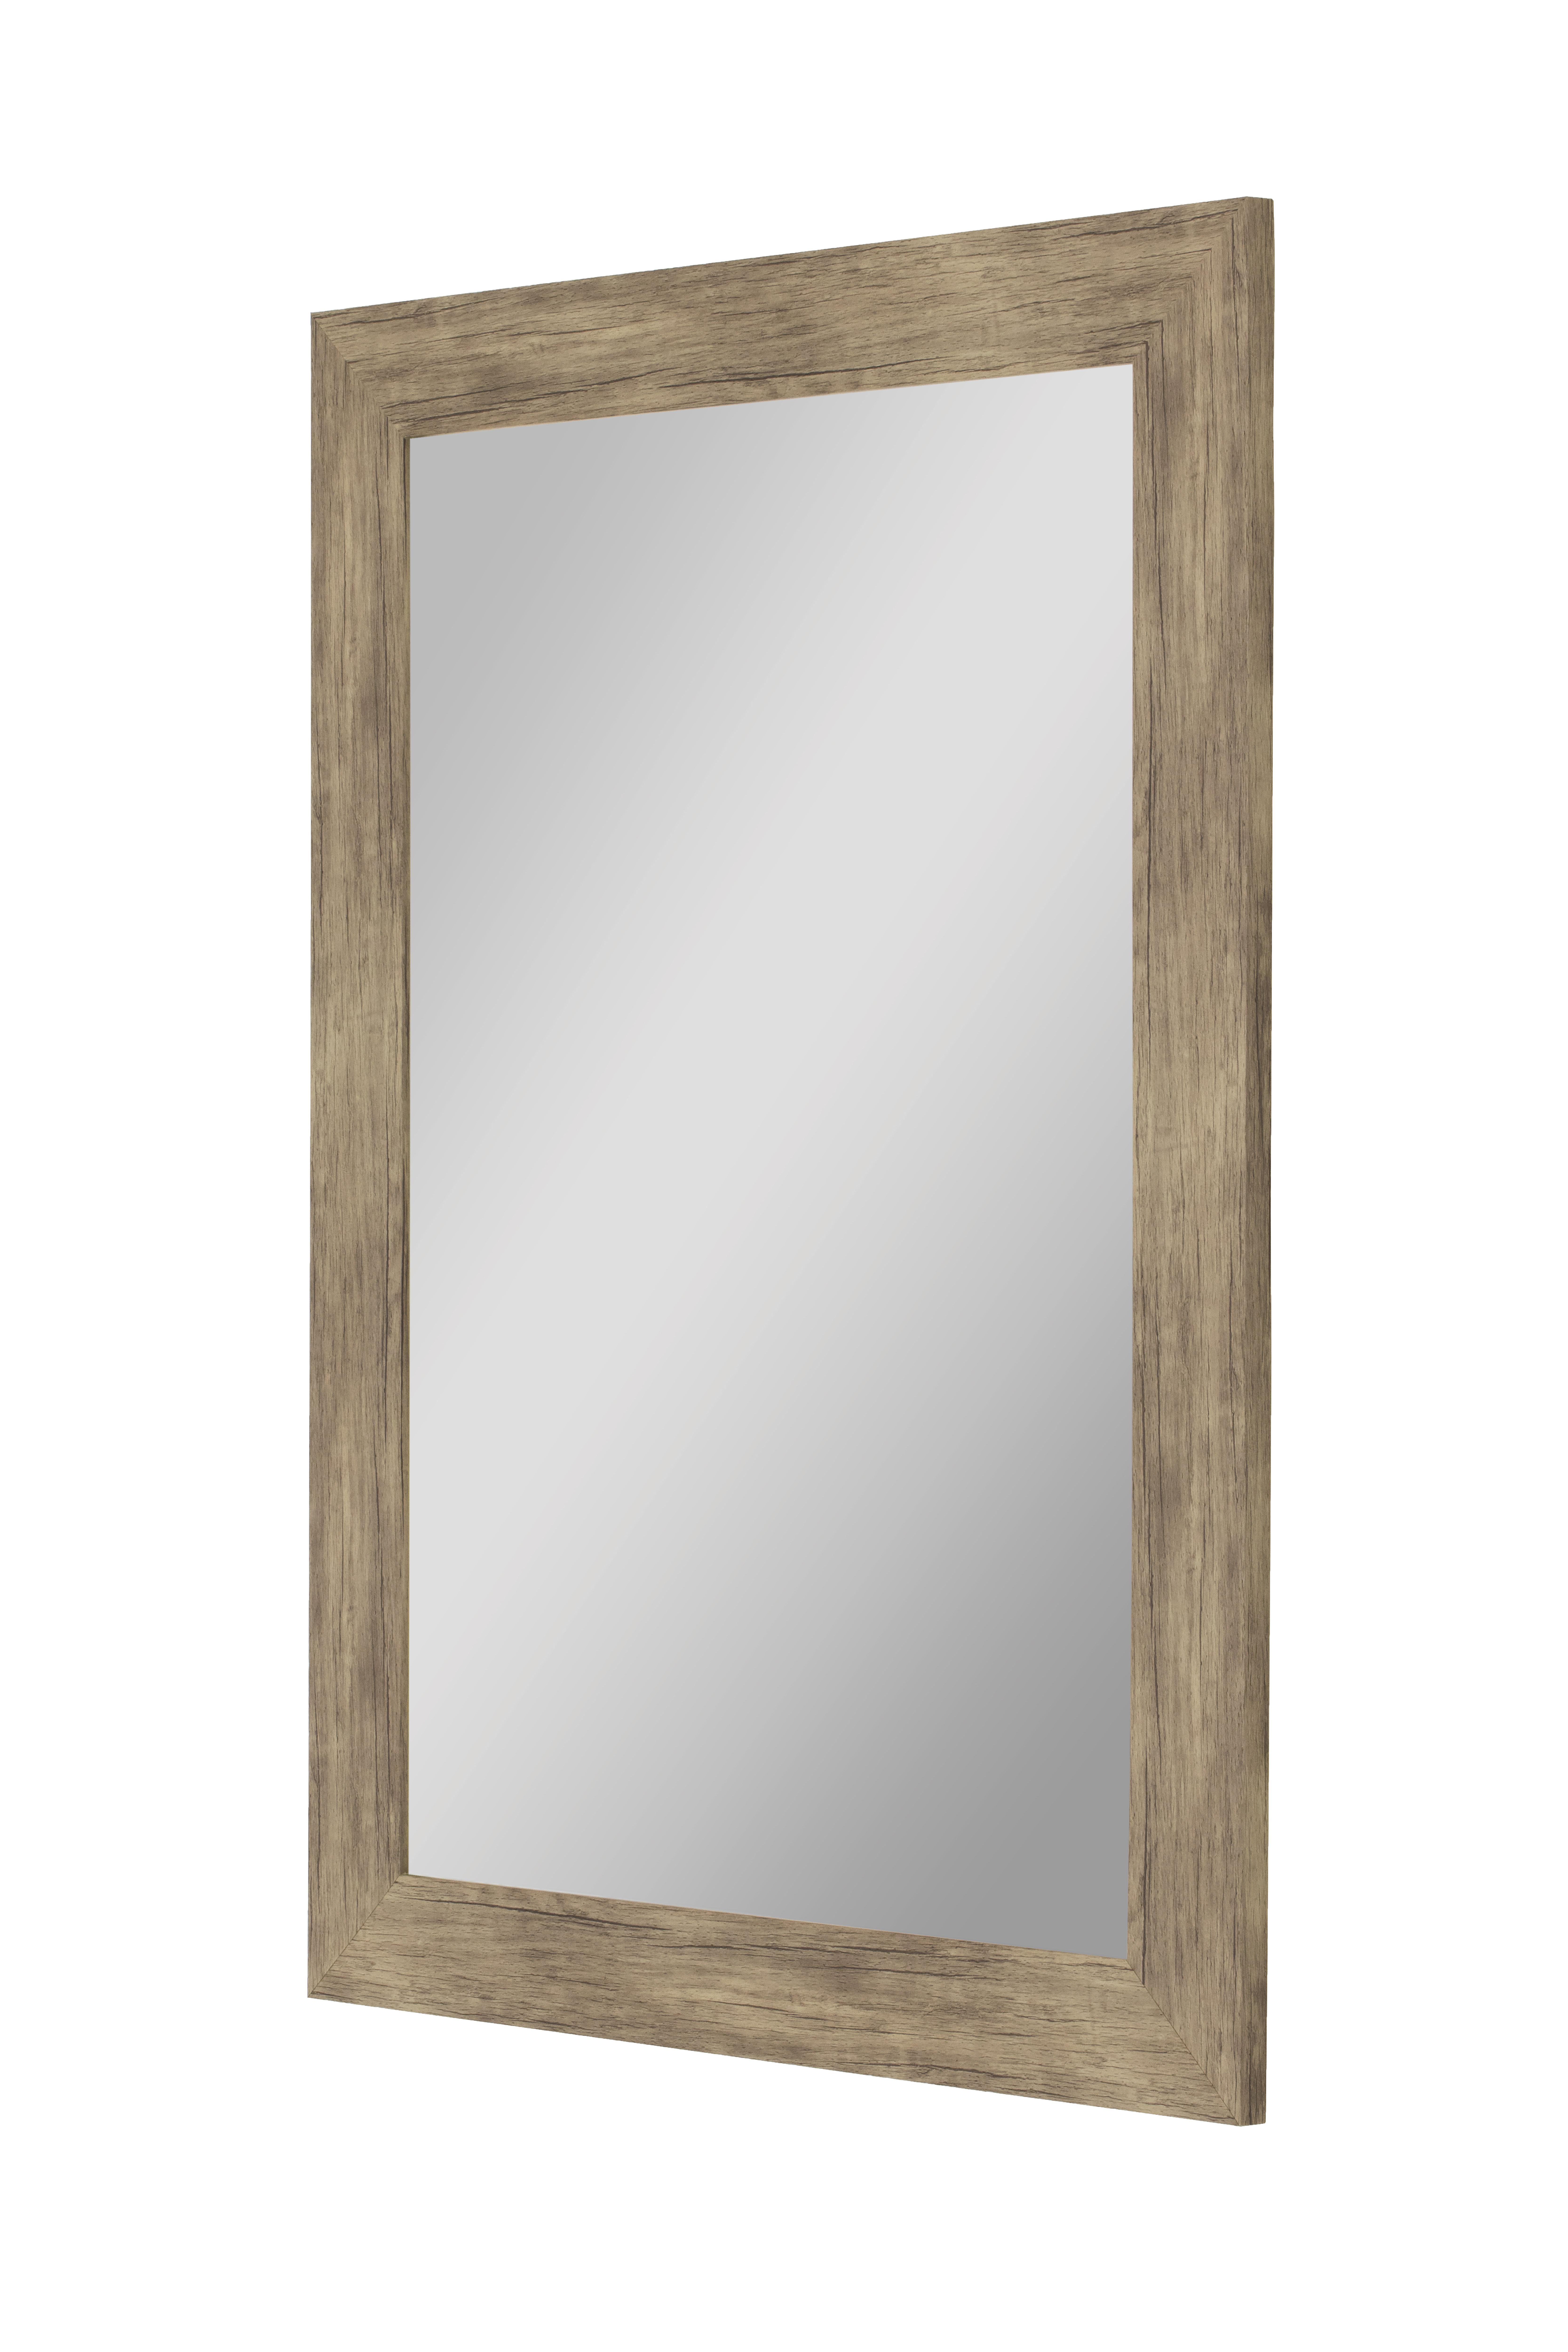 Areli Weathered Sand Barnwood Wall Mirror With Glynis Wild West Accent Mirrors (View 8 of 20)